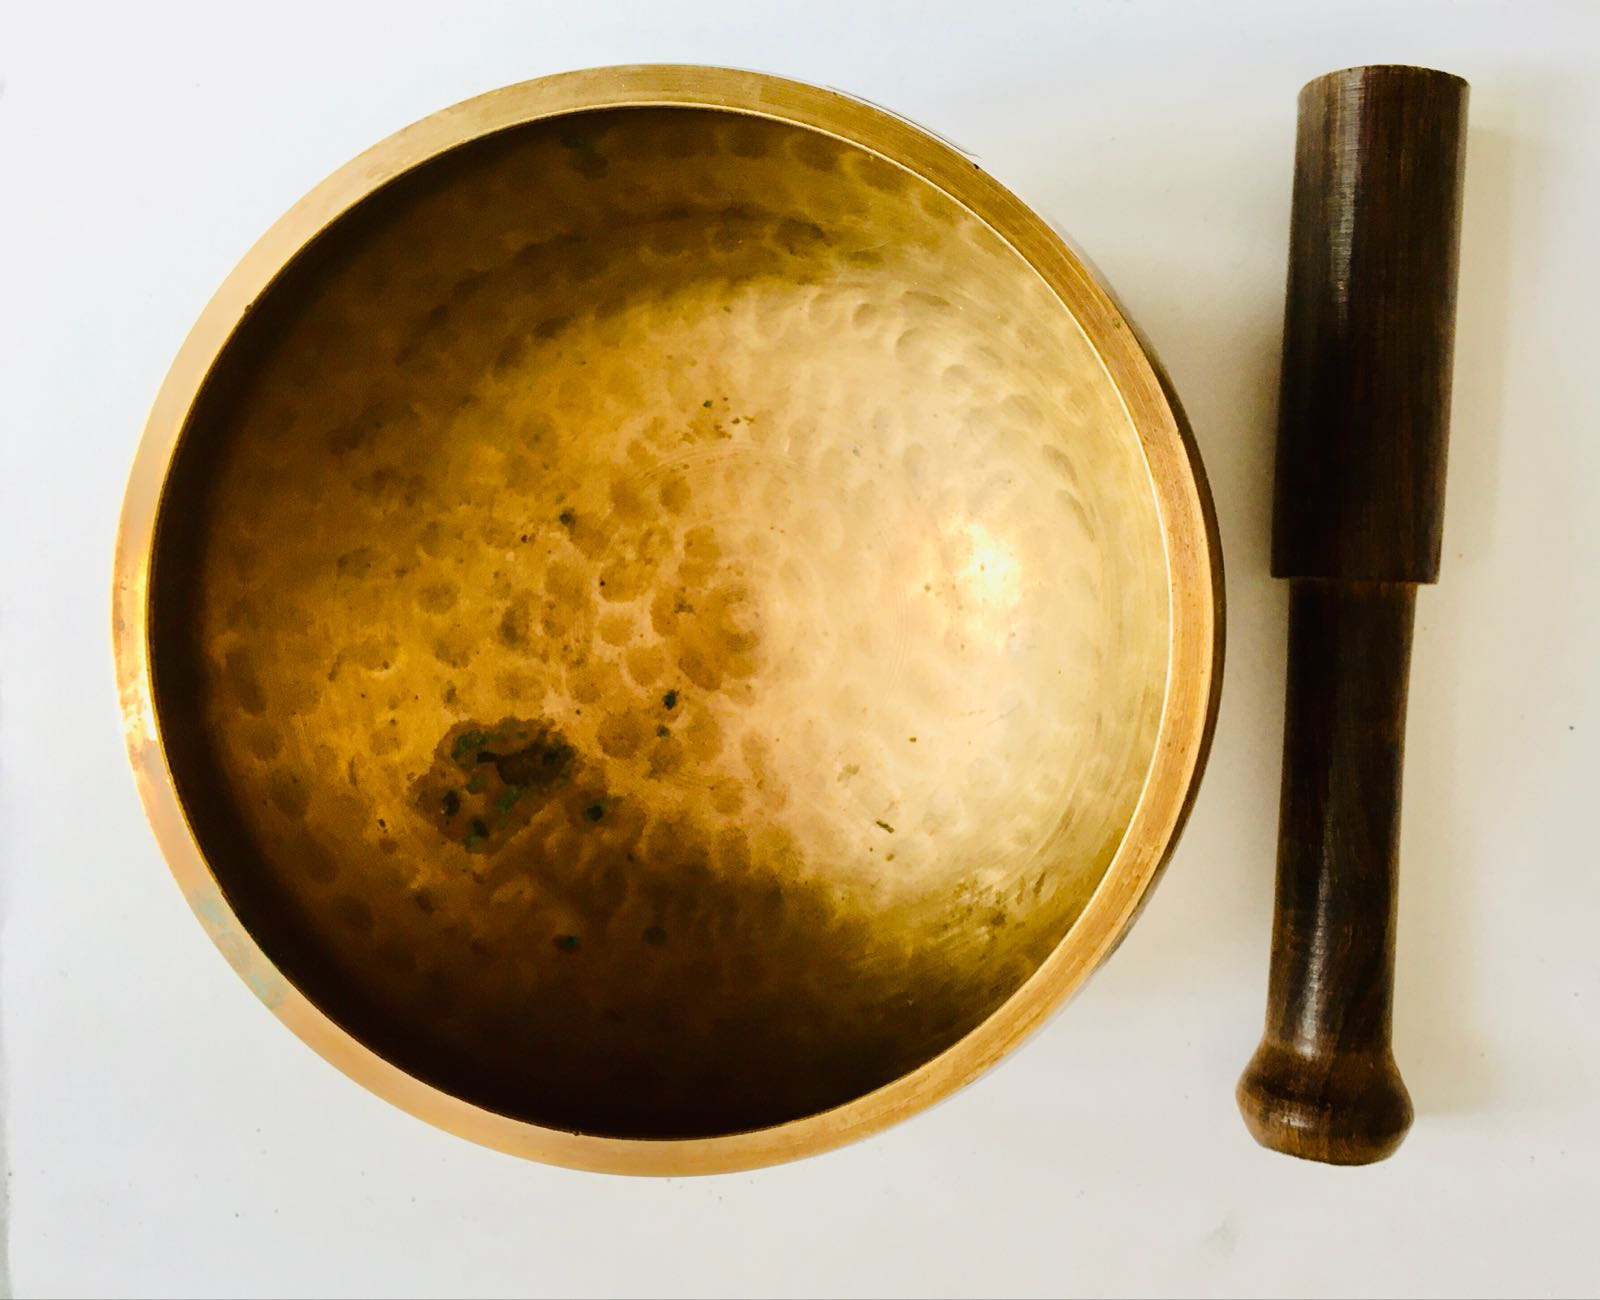 Singing Bowl and Beater  - sound dimension F